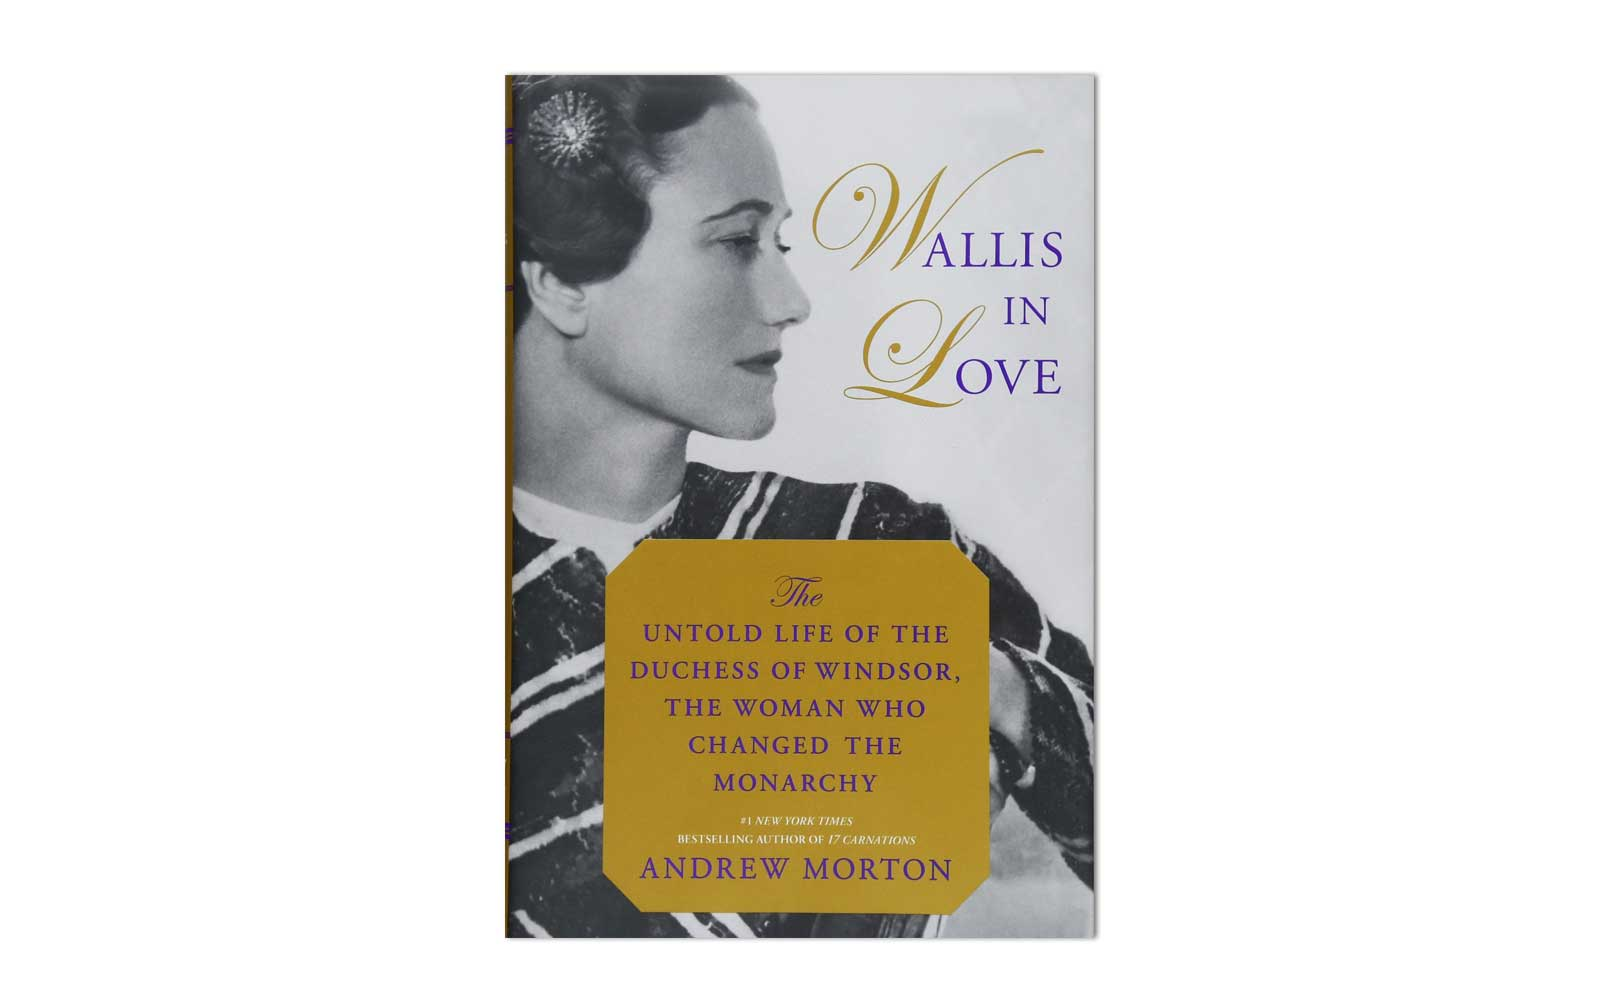 Wallis in Love: The Untold Life of of the Duchess of Windsor, the Woman Who Changed the Monarchy by Andrew Morton (Grand Central Publishing)